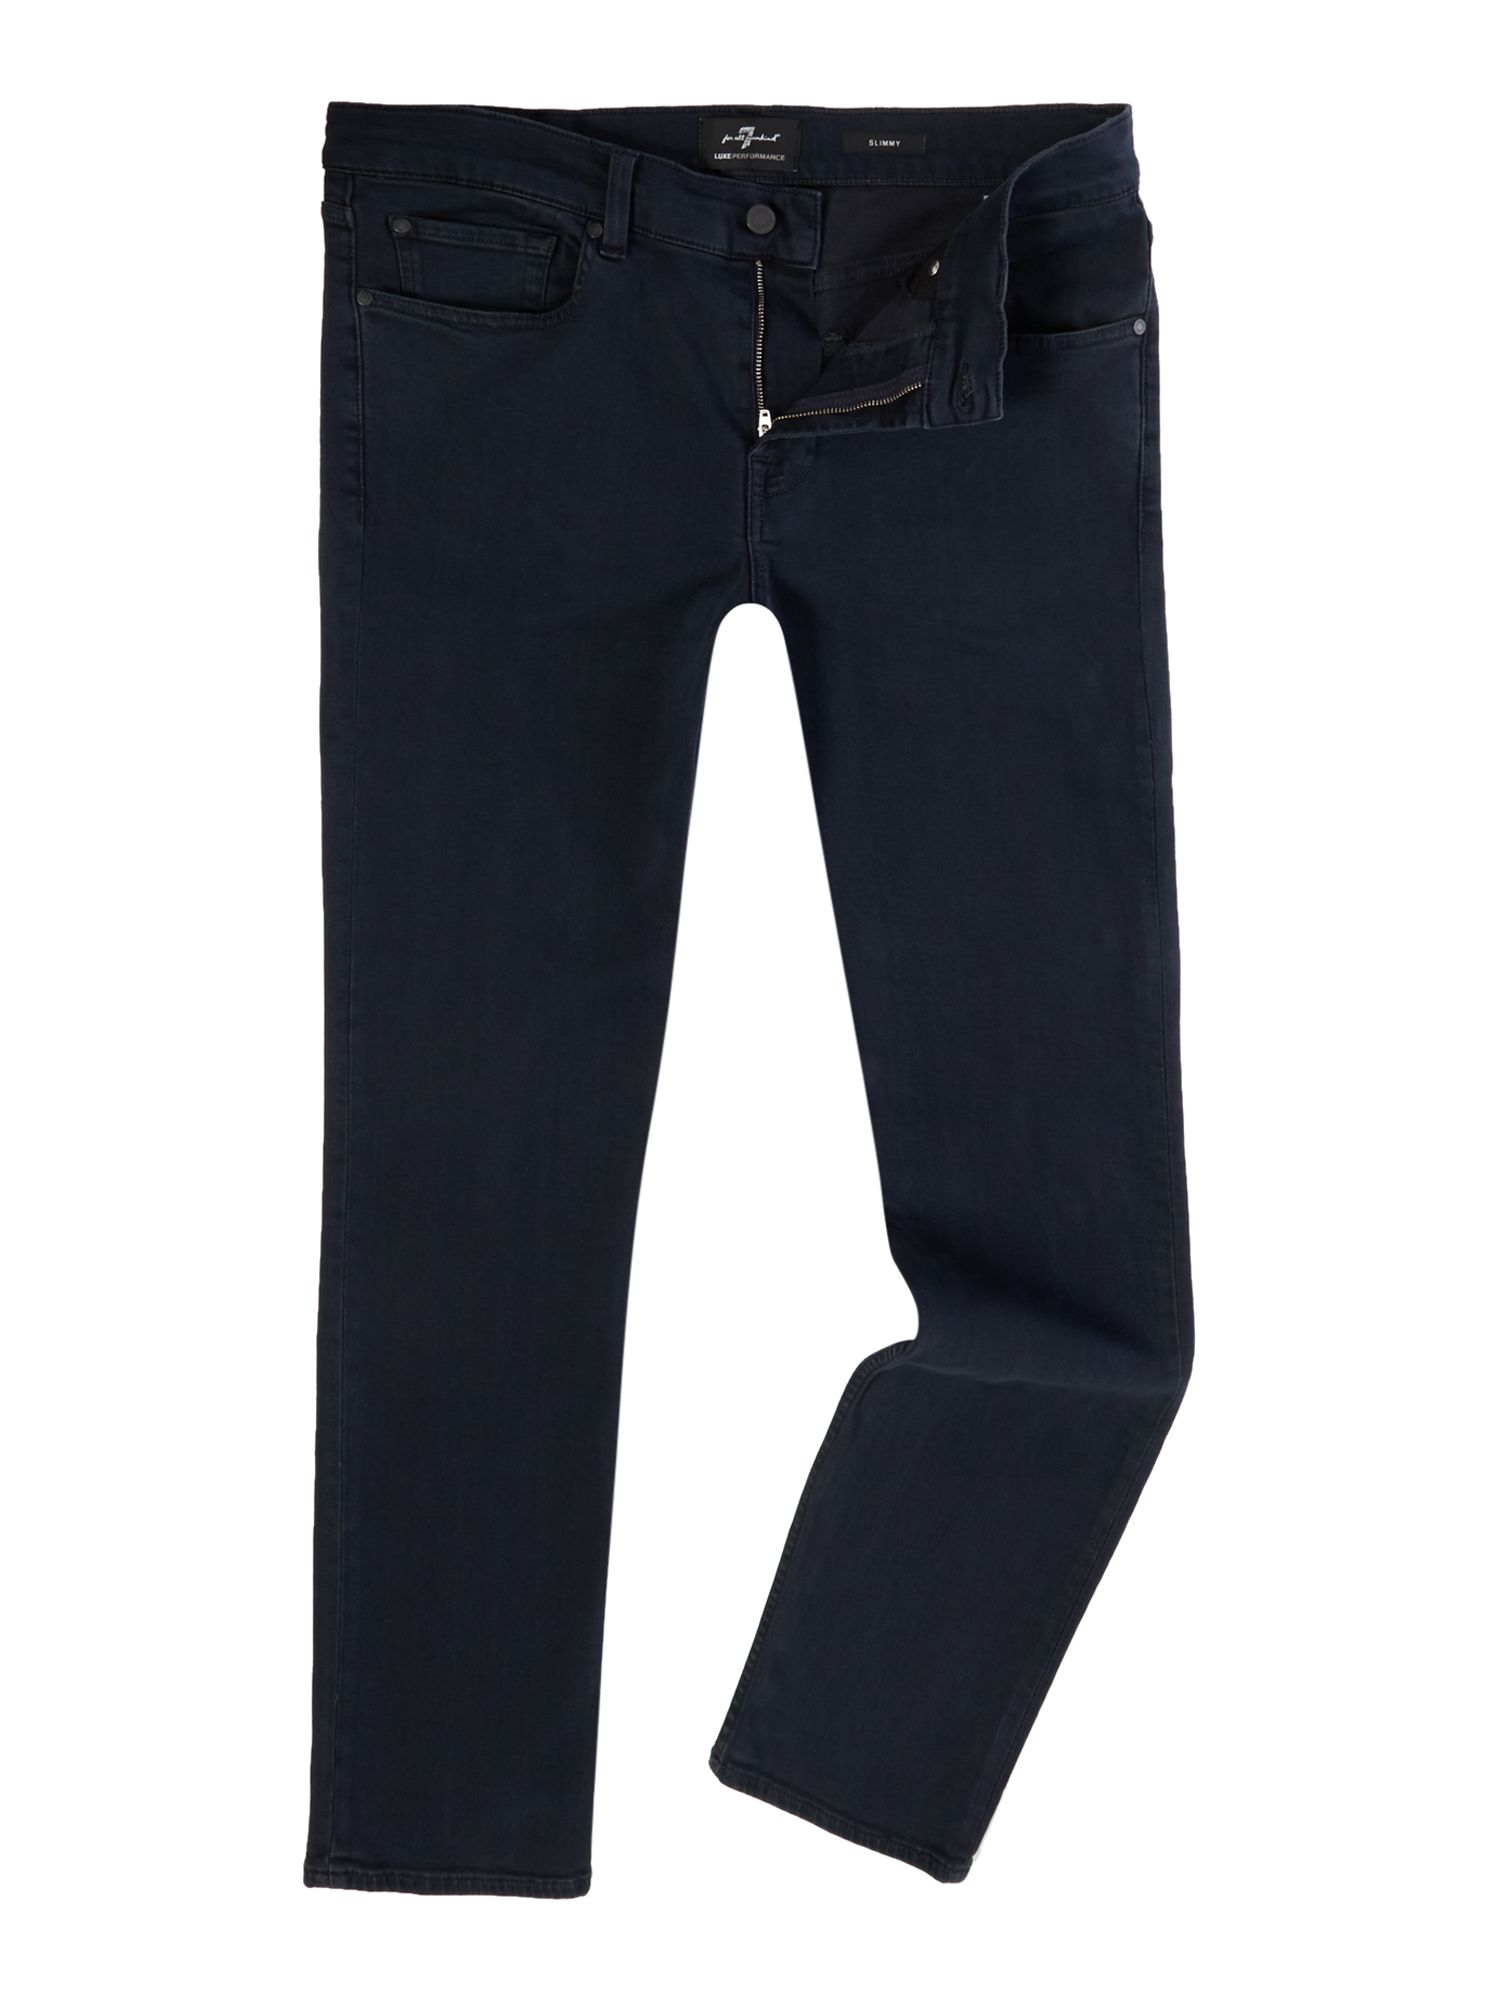 Mens Slim Fit Slimmy Luxe Performance Jeans, Denim Mid Wash